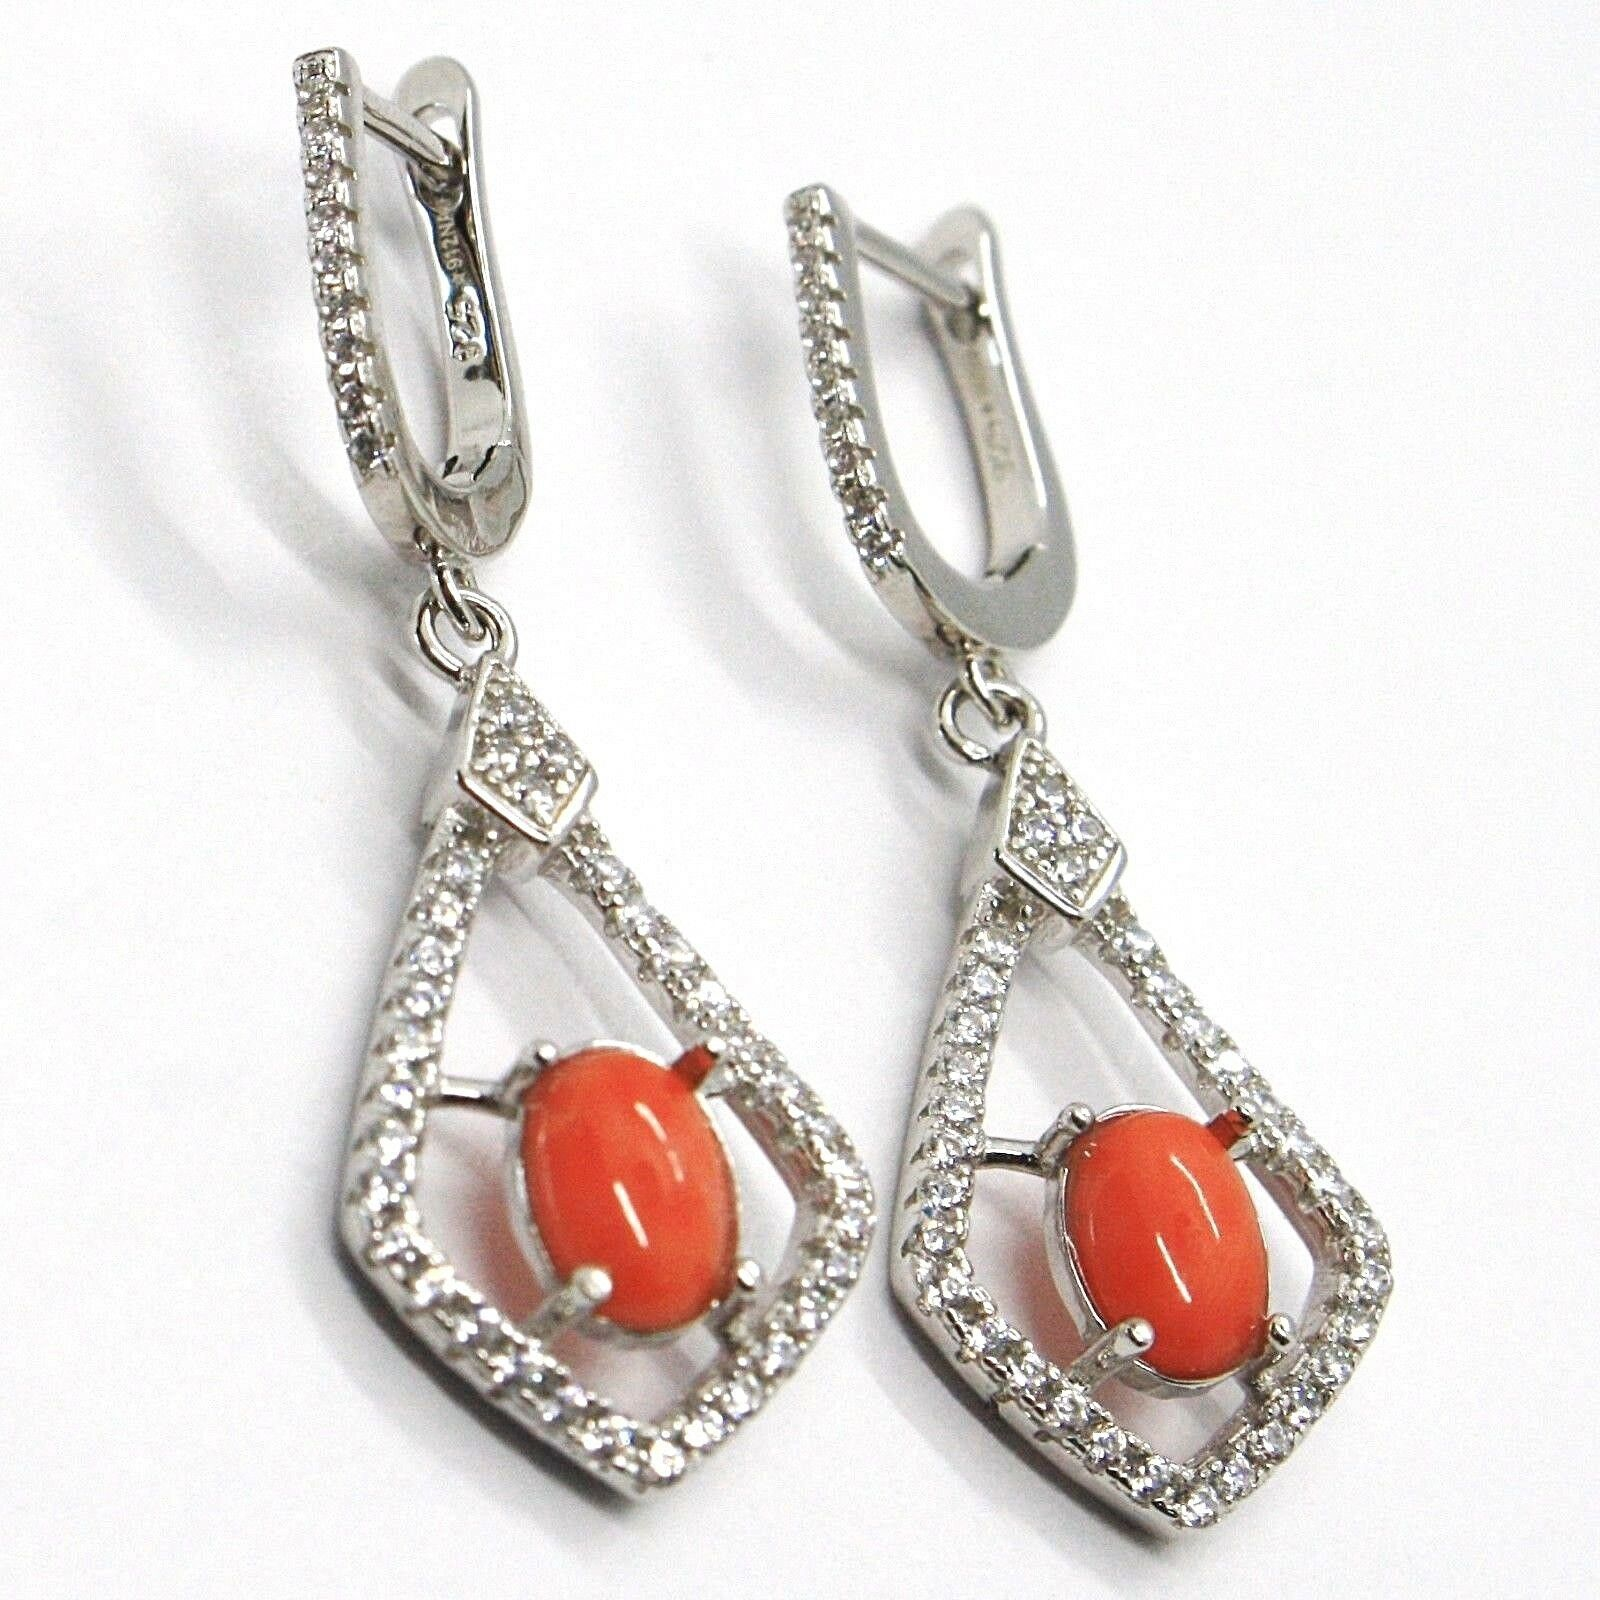 Silver Earrings 925, Hanging with Zircon, Red Coral Cabochon, Rhombuses